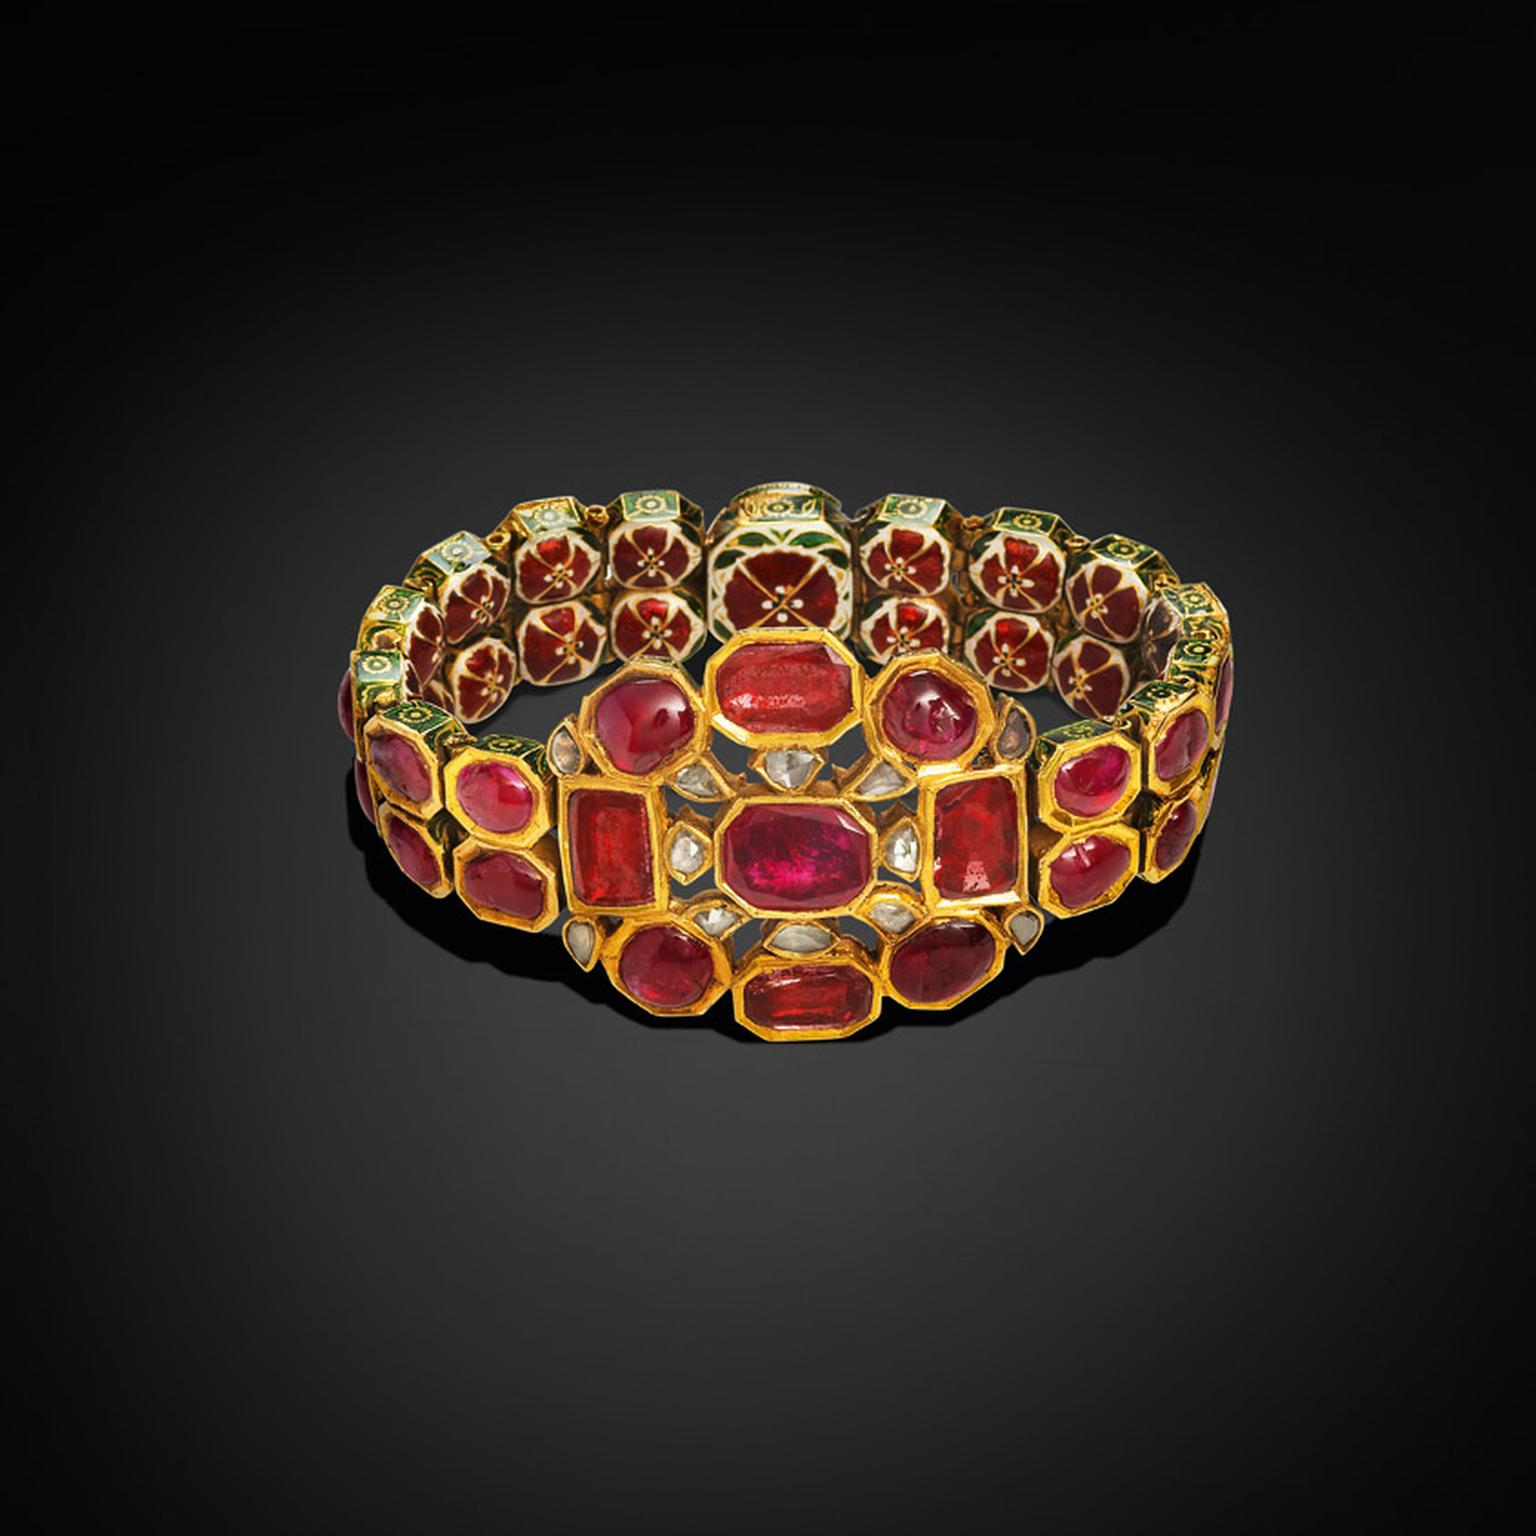 Al Thani Exhibition ruby and diamond bracelet